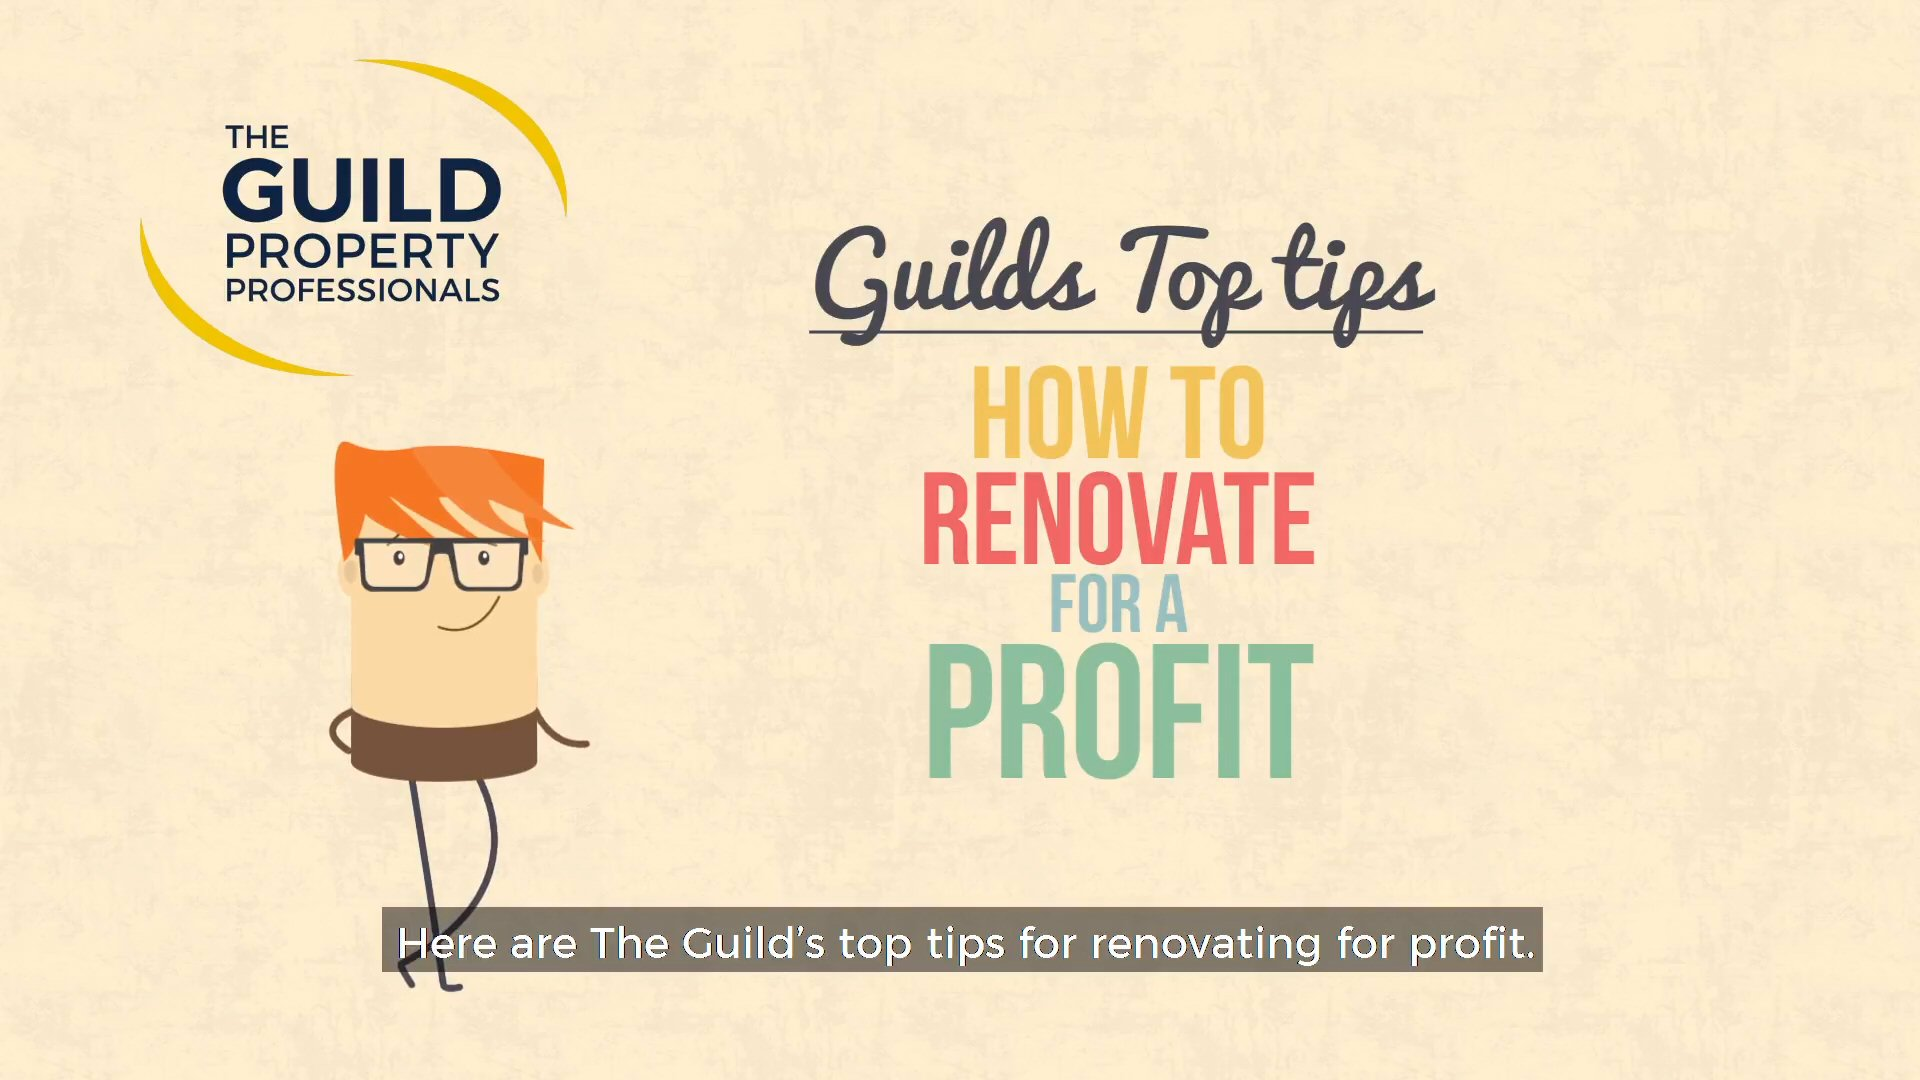 VIDEO: How to renovate a property to make money